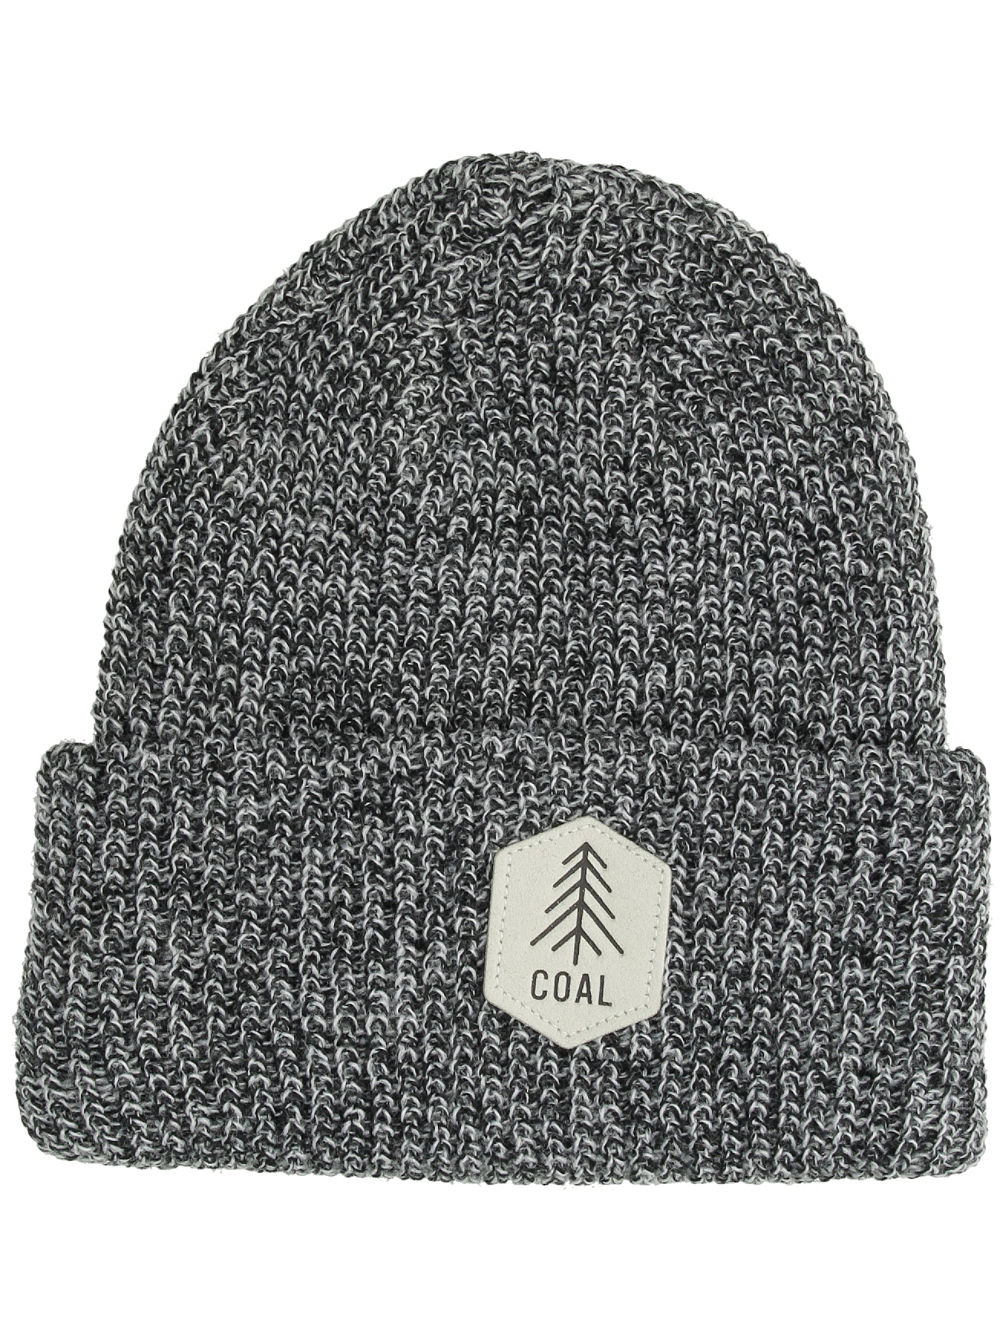 The Scout Beanie